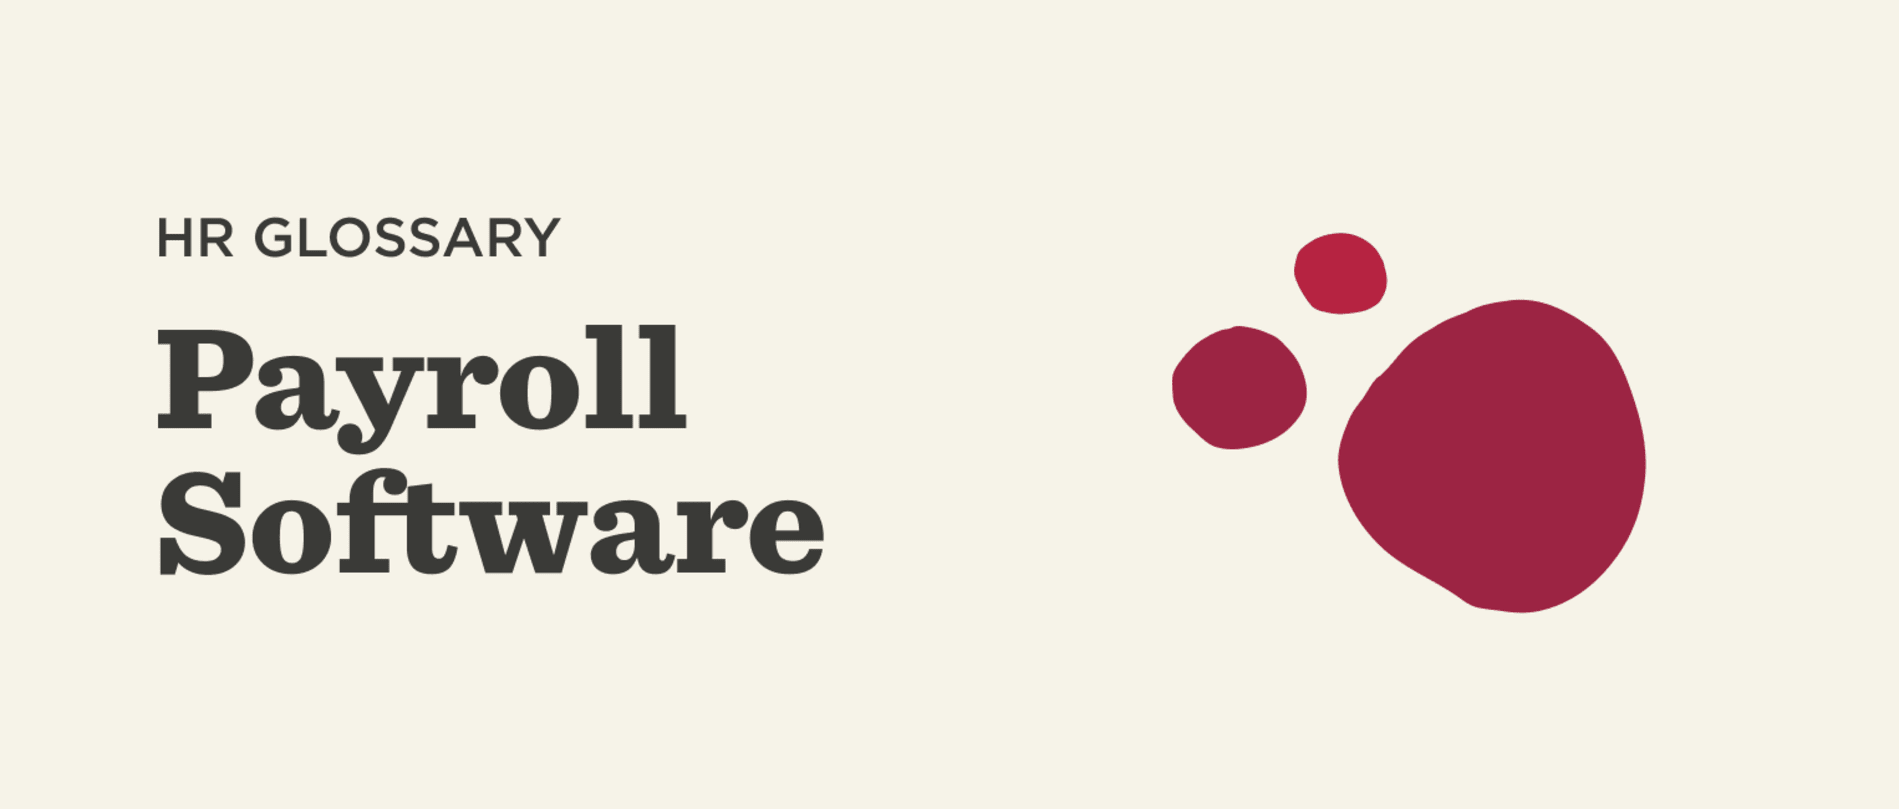 What is Payroll software? - Payroll-Software-Glossary-banner.png